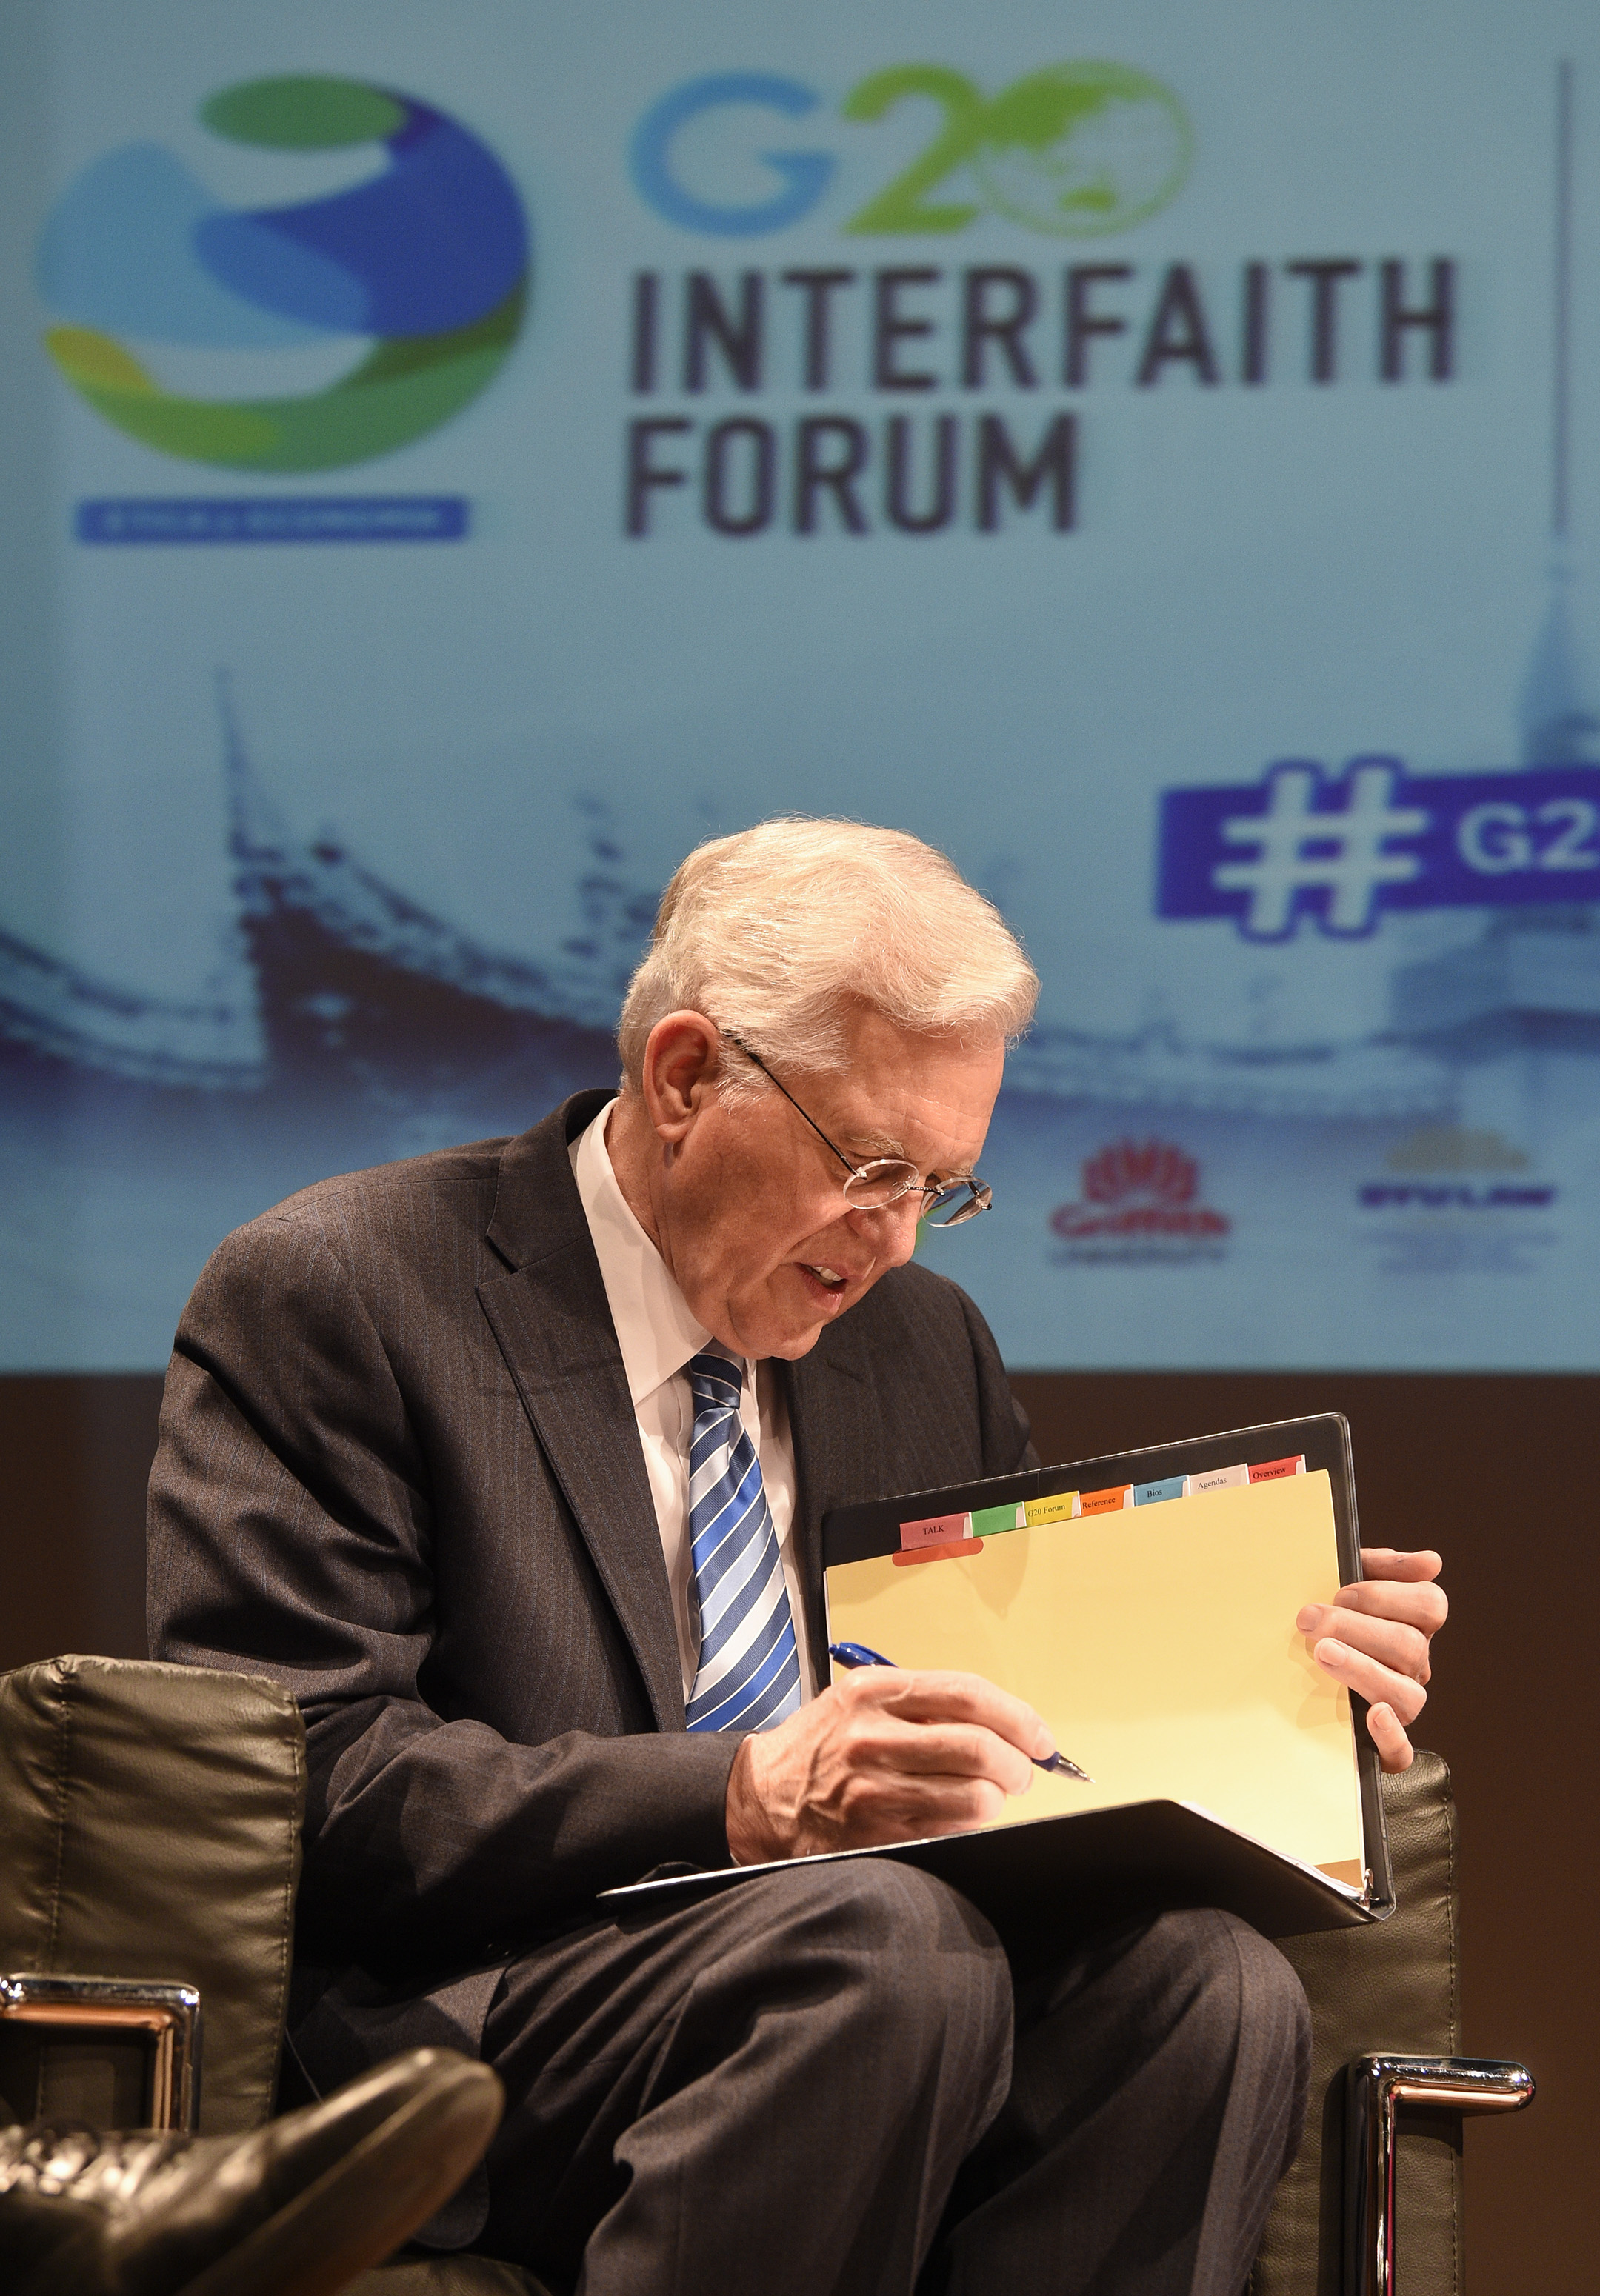 Elder D. Todd Christofferson member of Twelve Apostles of The Church of Jesus Christ of Latter-day Saints before to the speech during a the G20 Interfaith Forum in Buenos Aires, Argentina, Sunday, Sep 26, 2018. (AP Photo/Gustavo Garello)